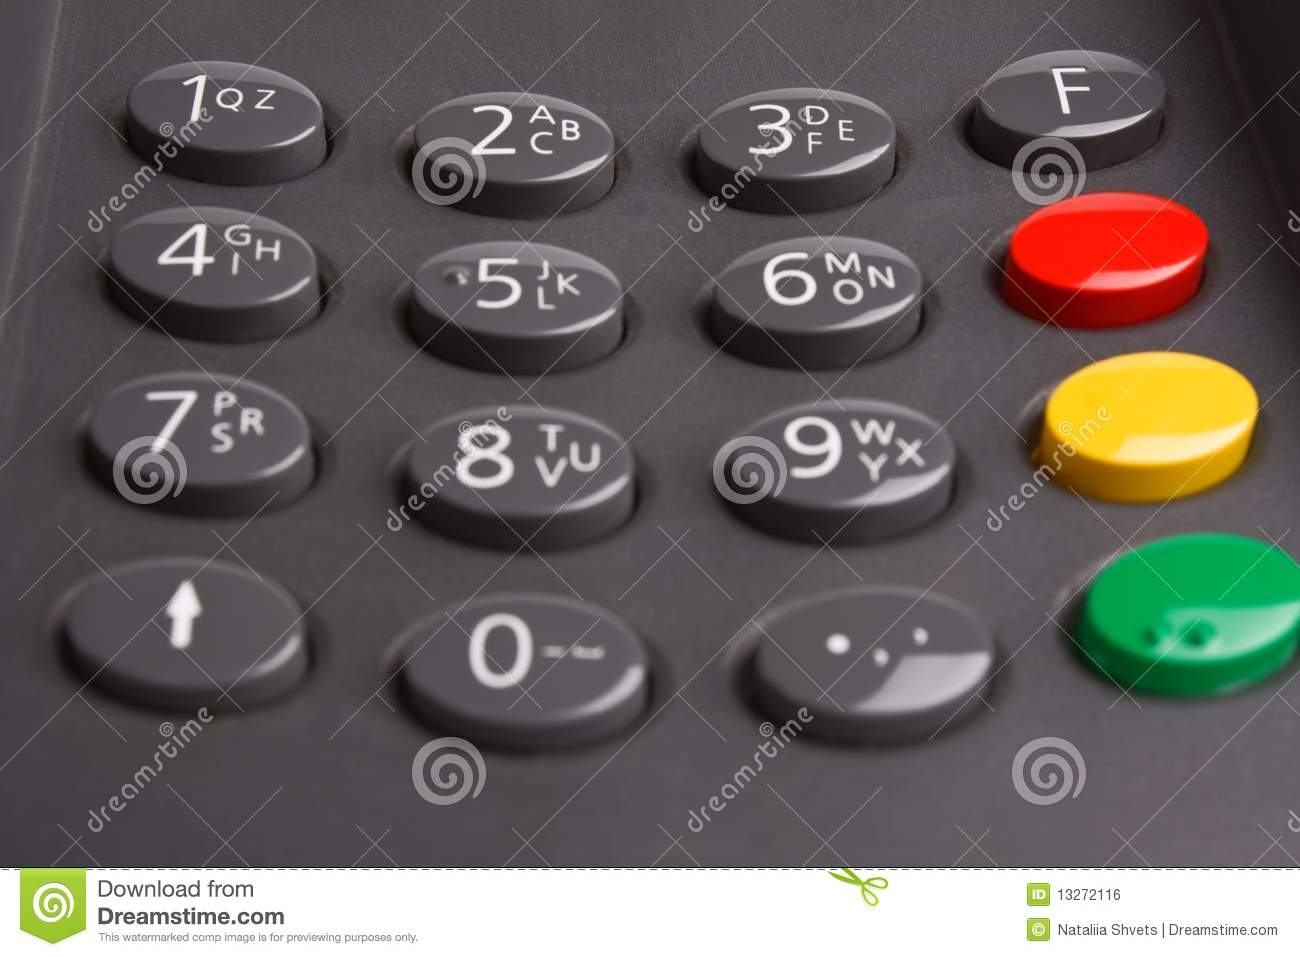 Keypad with buttons